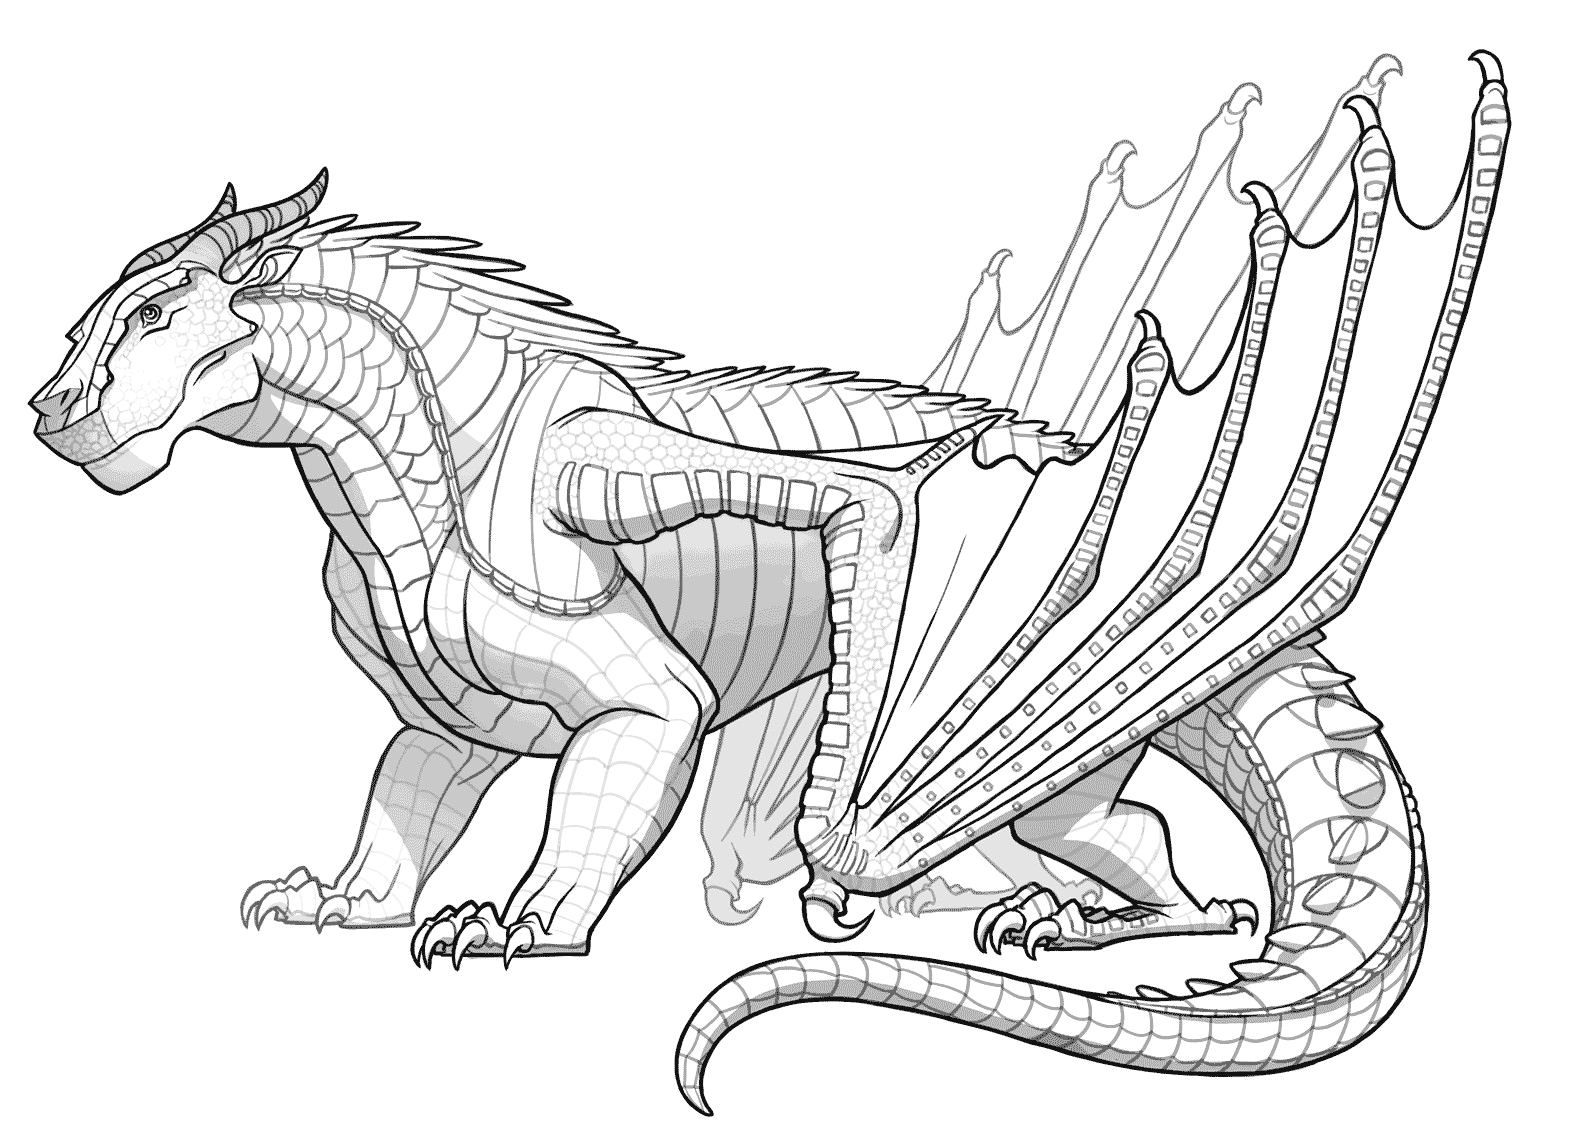 Free Printable Dragon Coloring Pages for Kids Dragon Coloring Pages for Adults Best Coloring Pages for